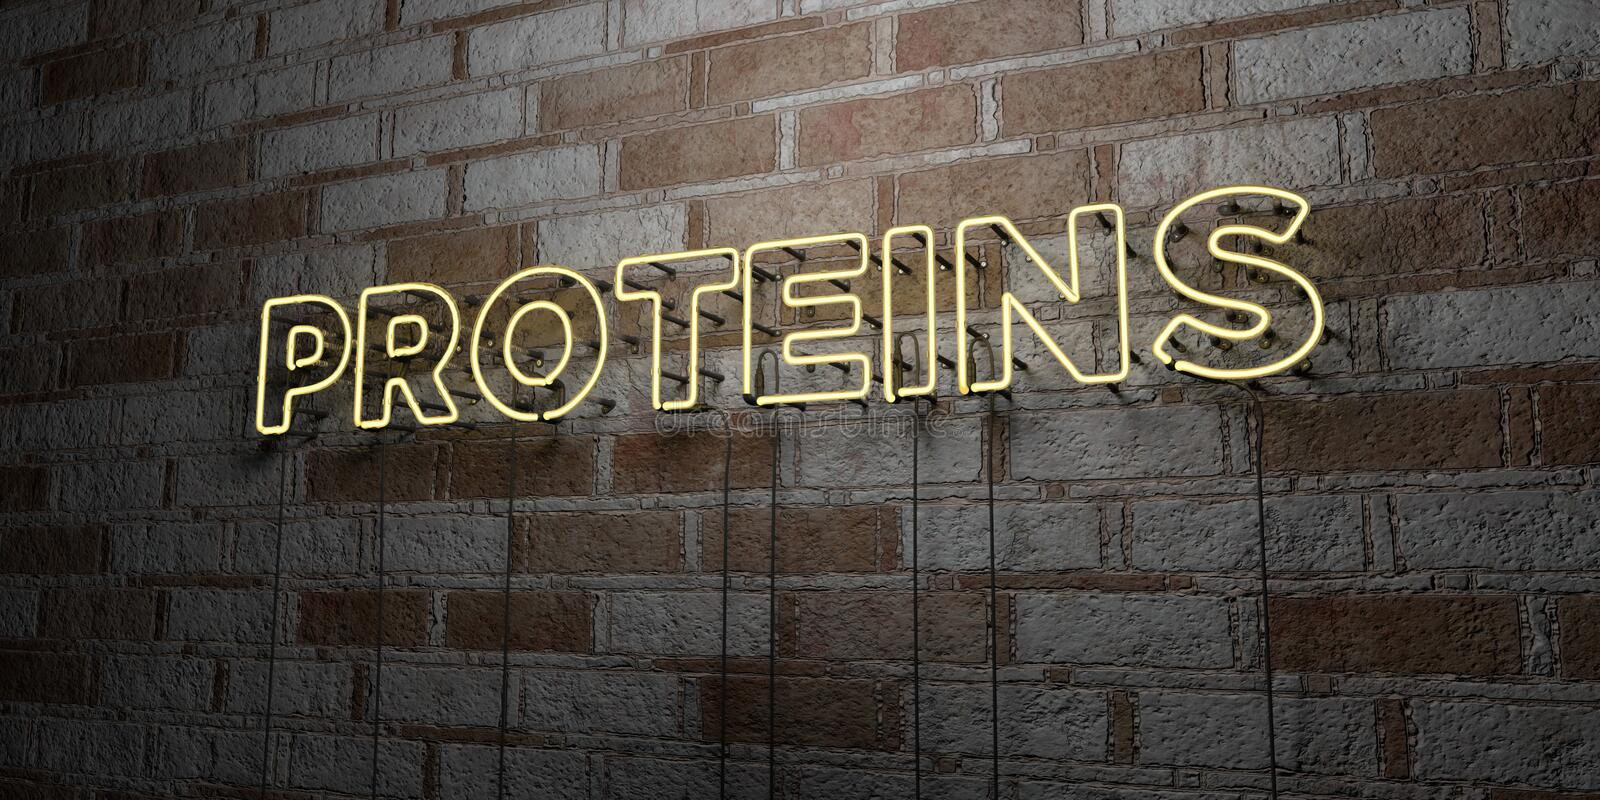 PROTEINS - Glowing Neon Sign on stonework wall - 3D rendered royalty free stock illustration. Can be used for online banner ads and direct mailers stock illustration